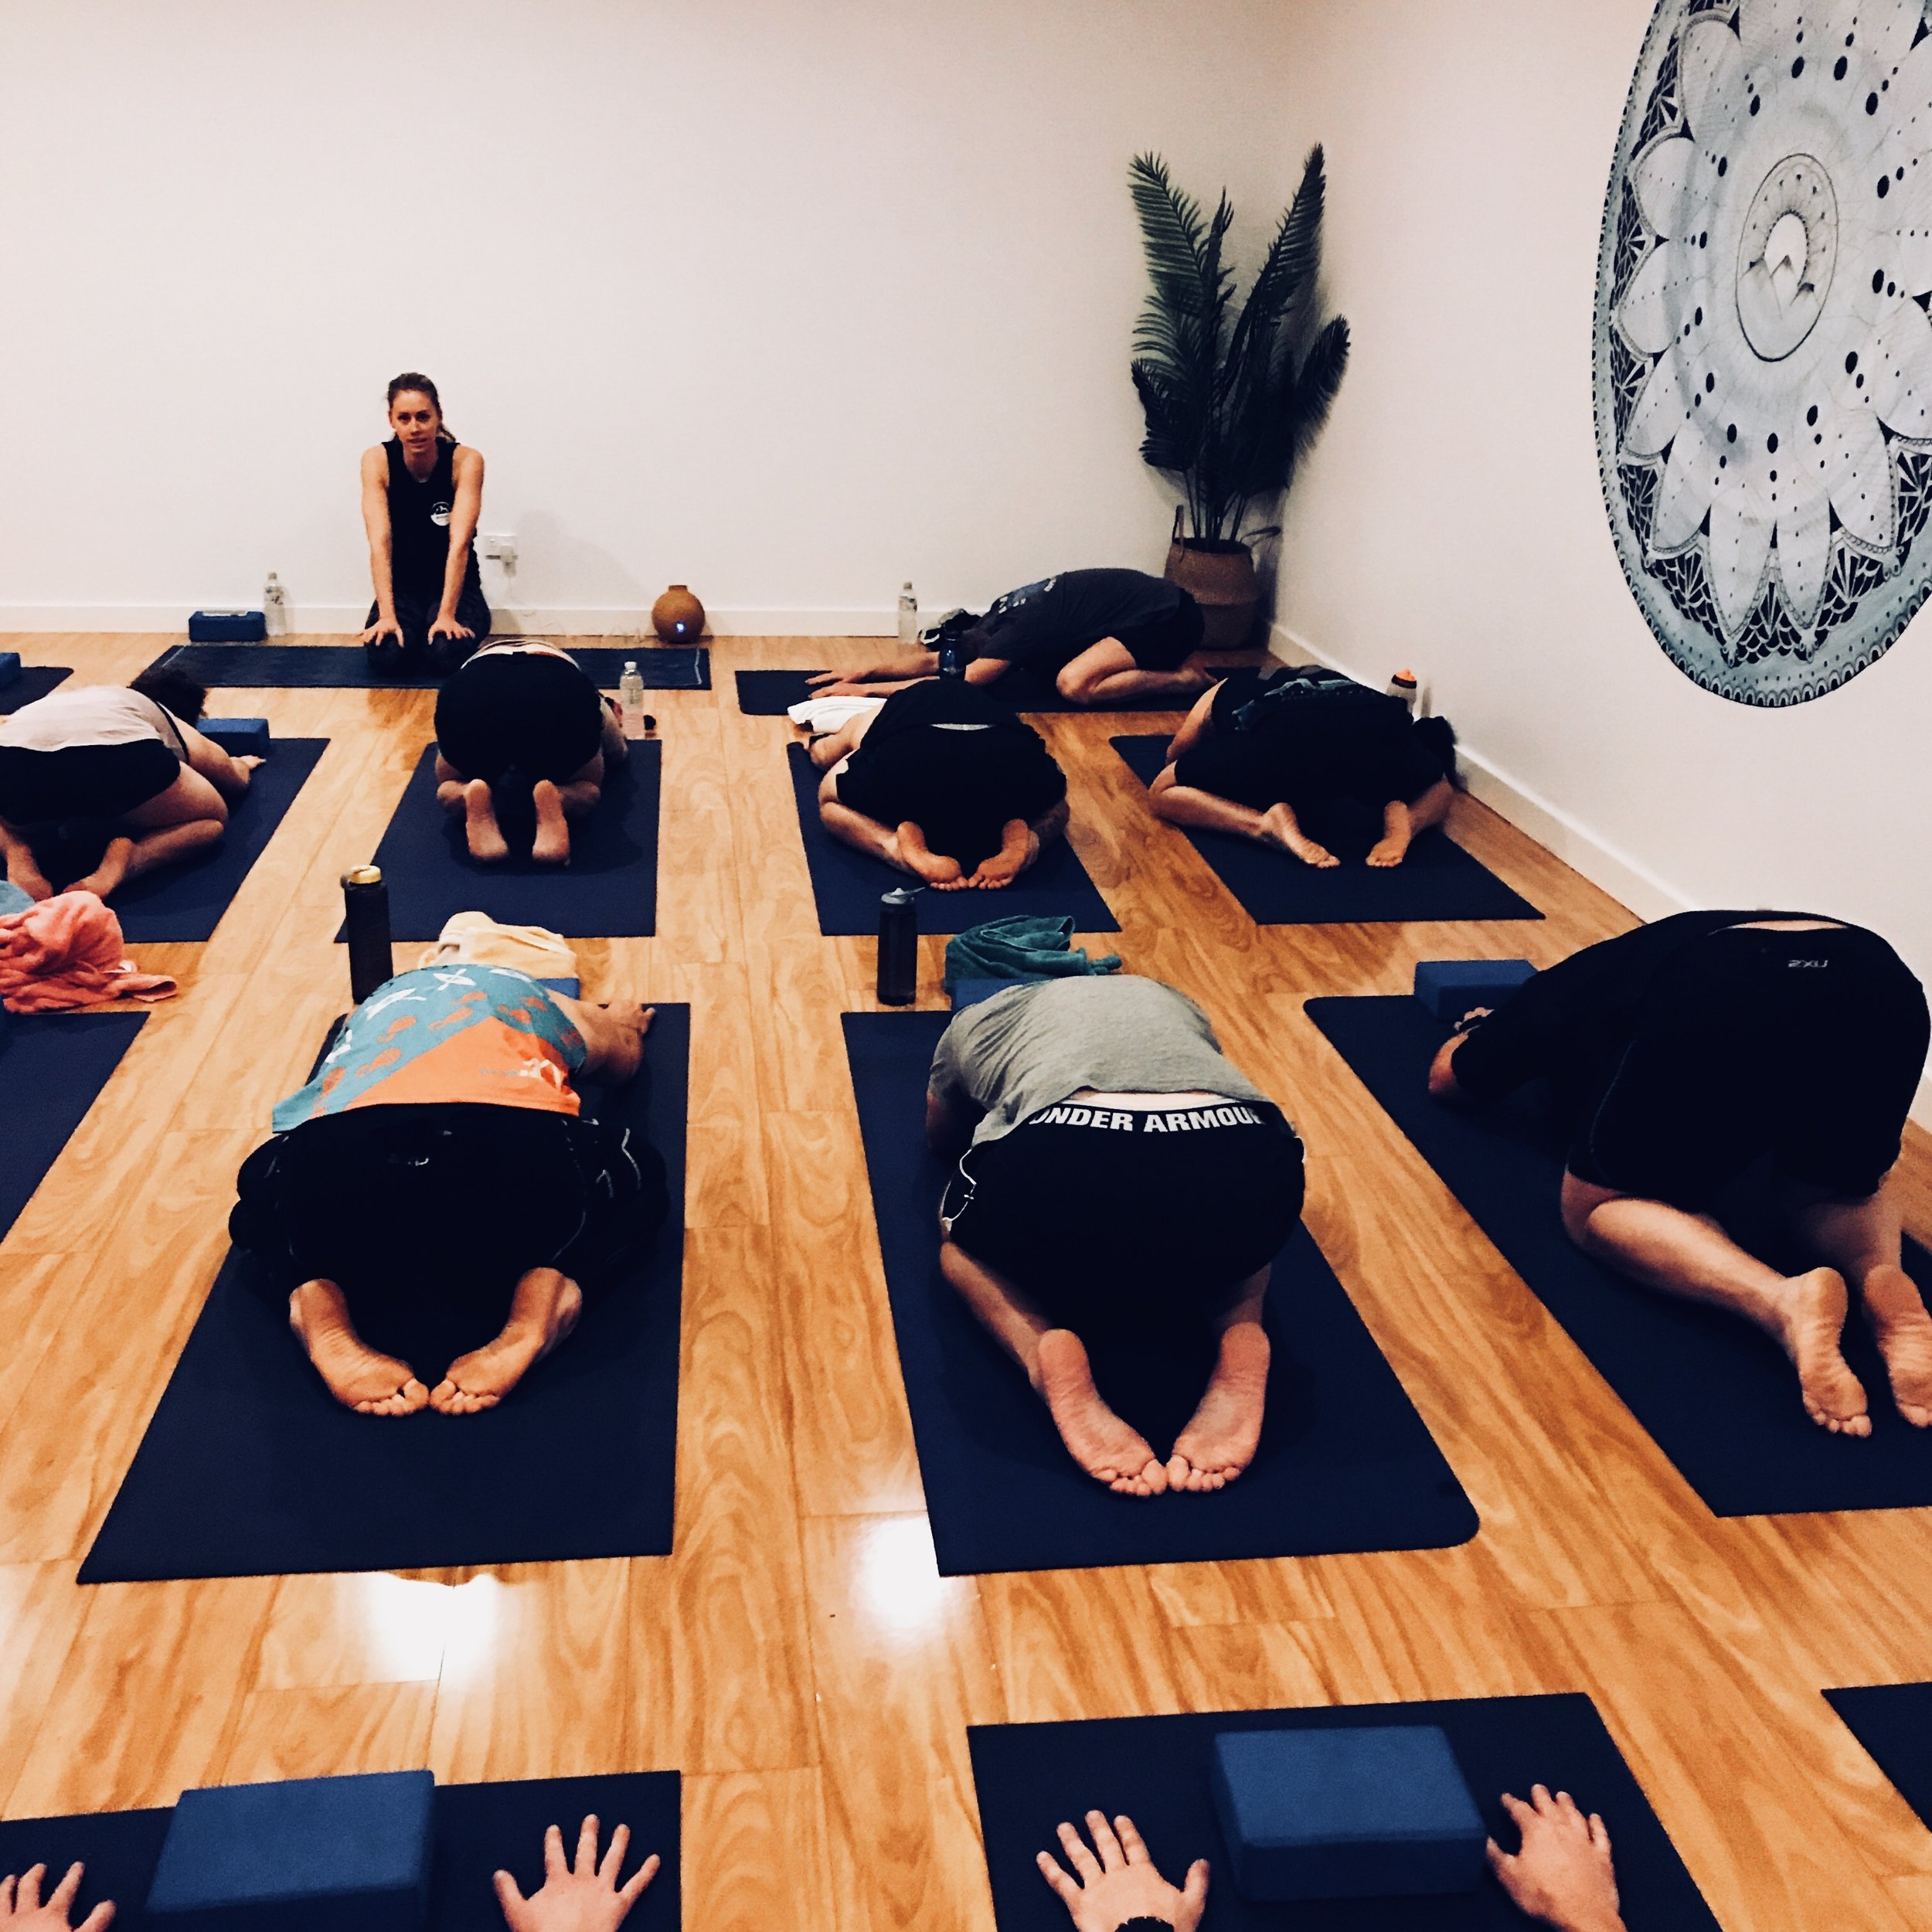 HoT YOGA - 9:30AM & 10:30AM Sessions $15ppJoin Elyse from @BrightBootCamp for some Hot Yoga in the brand new studio. Relax, unwind, sweat and refresh body & mind. Register online here.